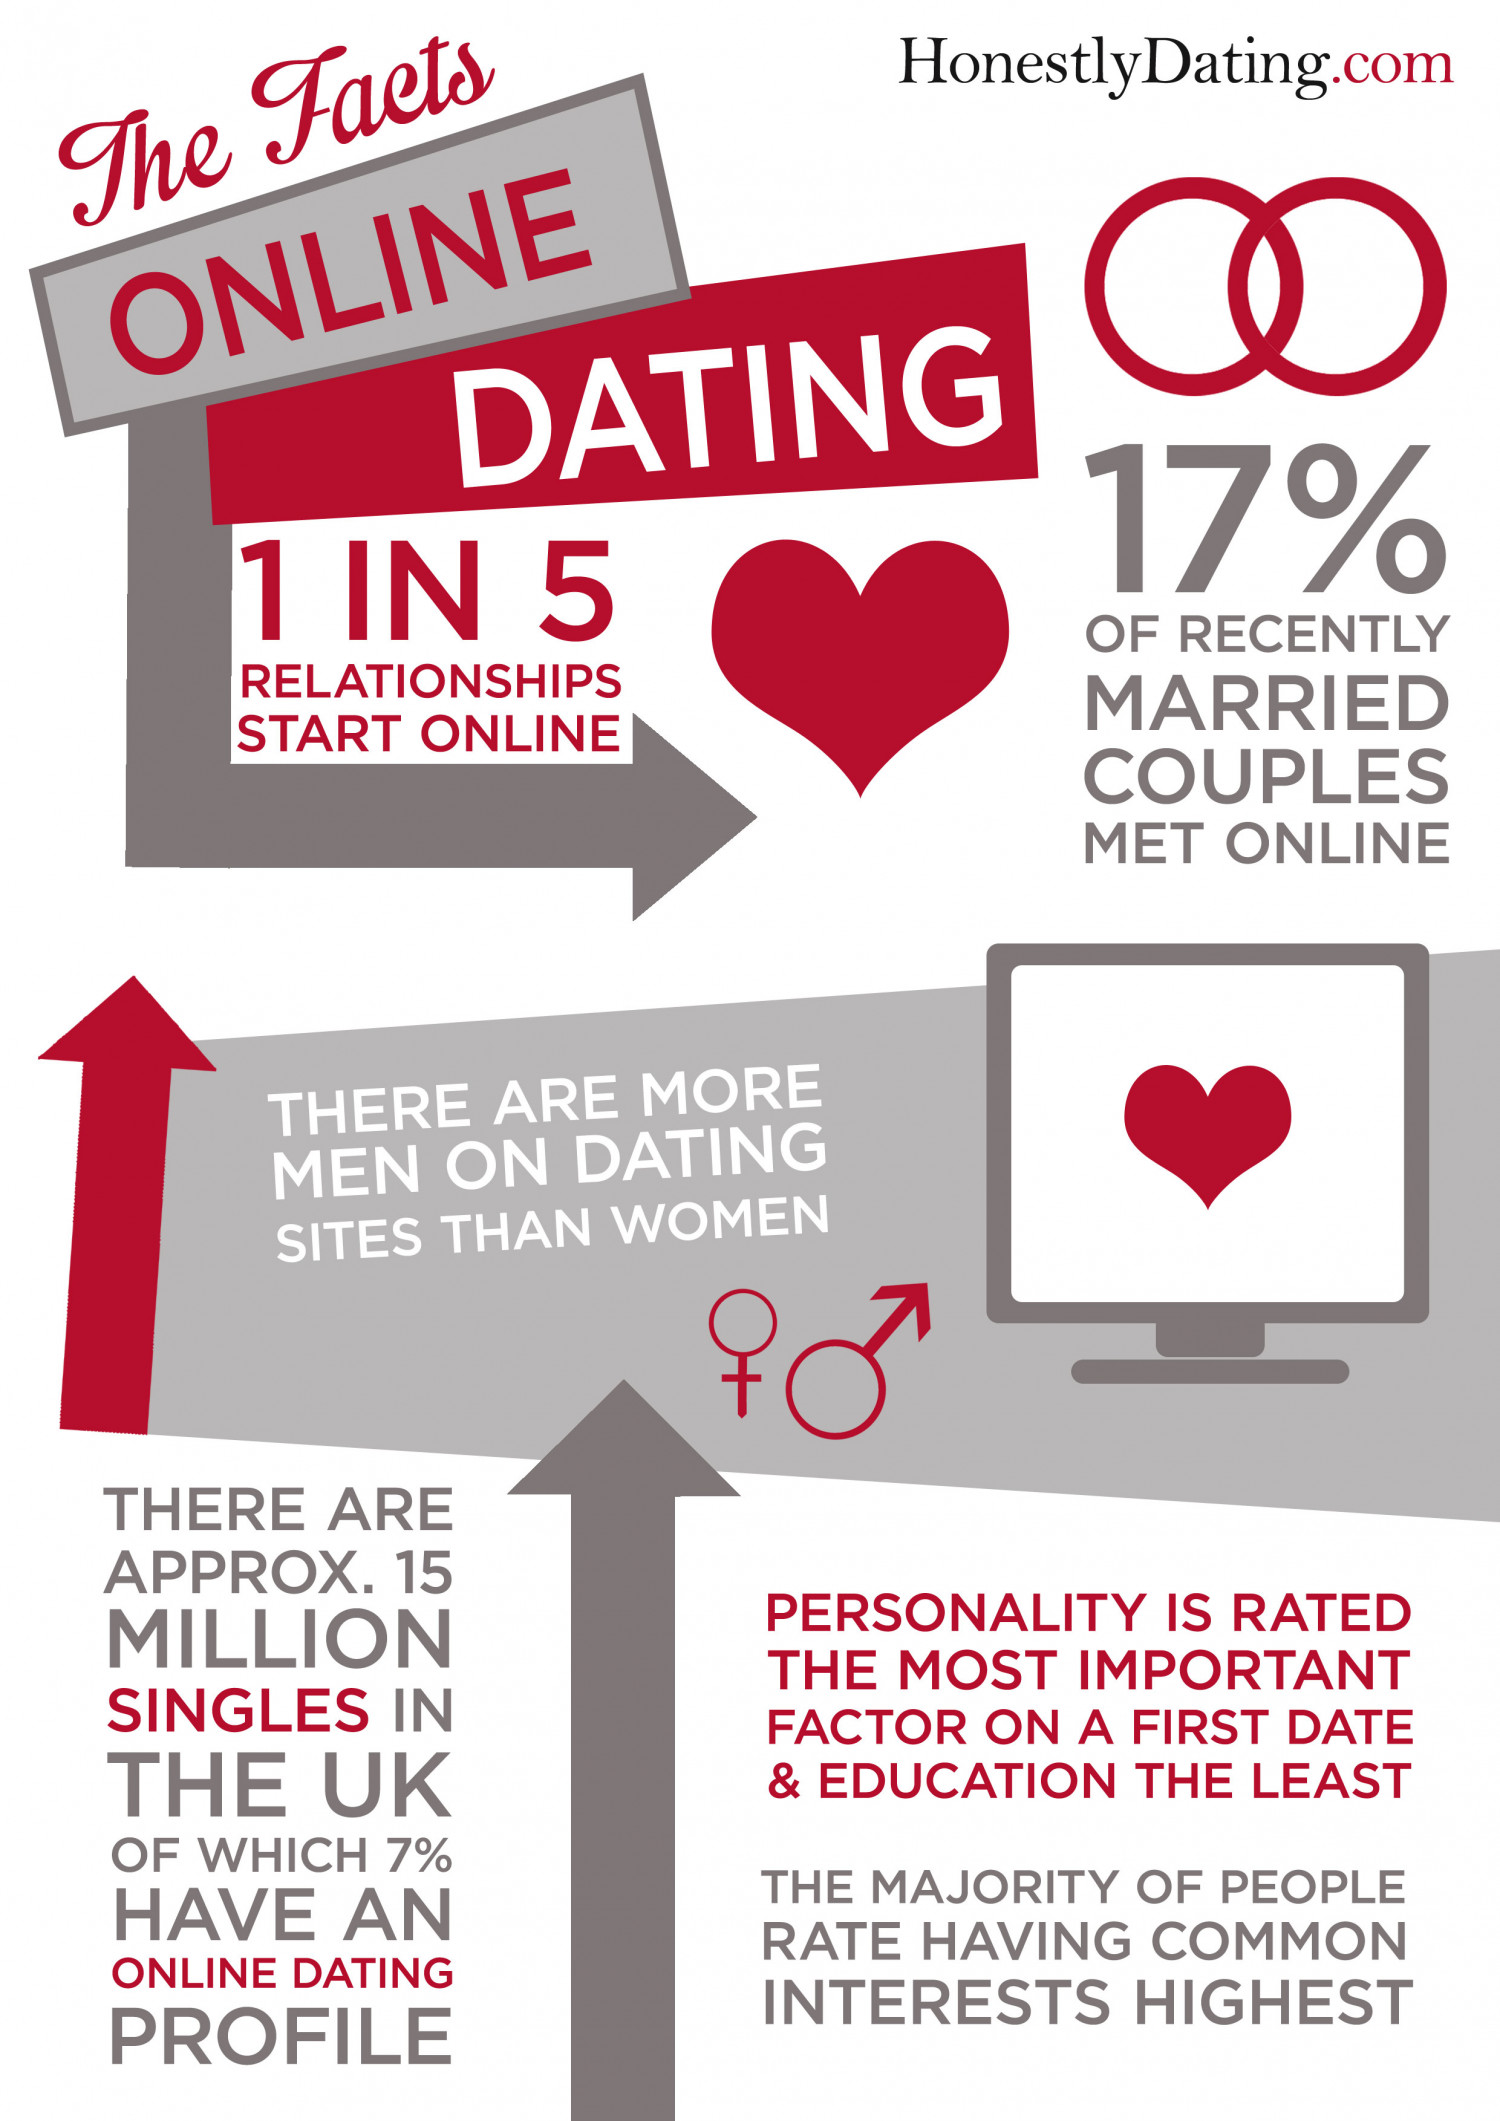 Online dating statistics how it starts